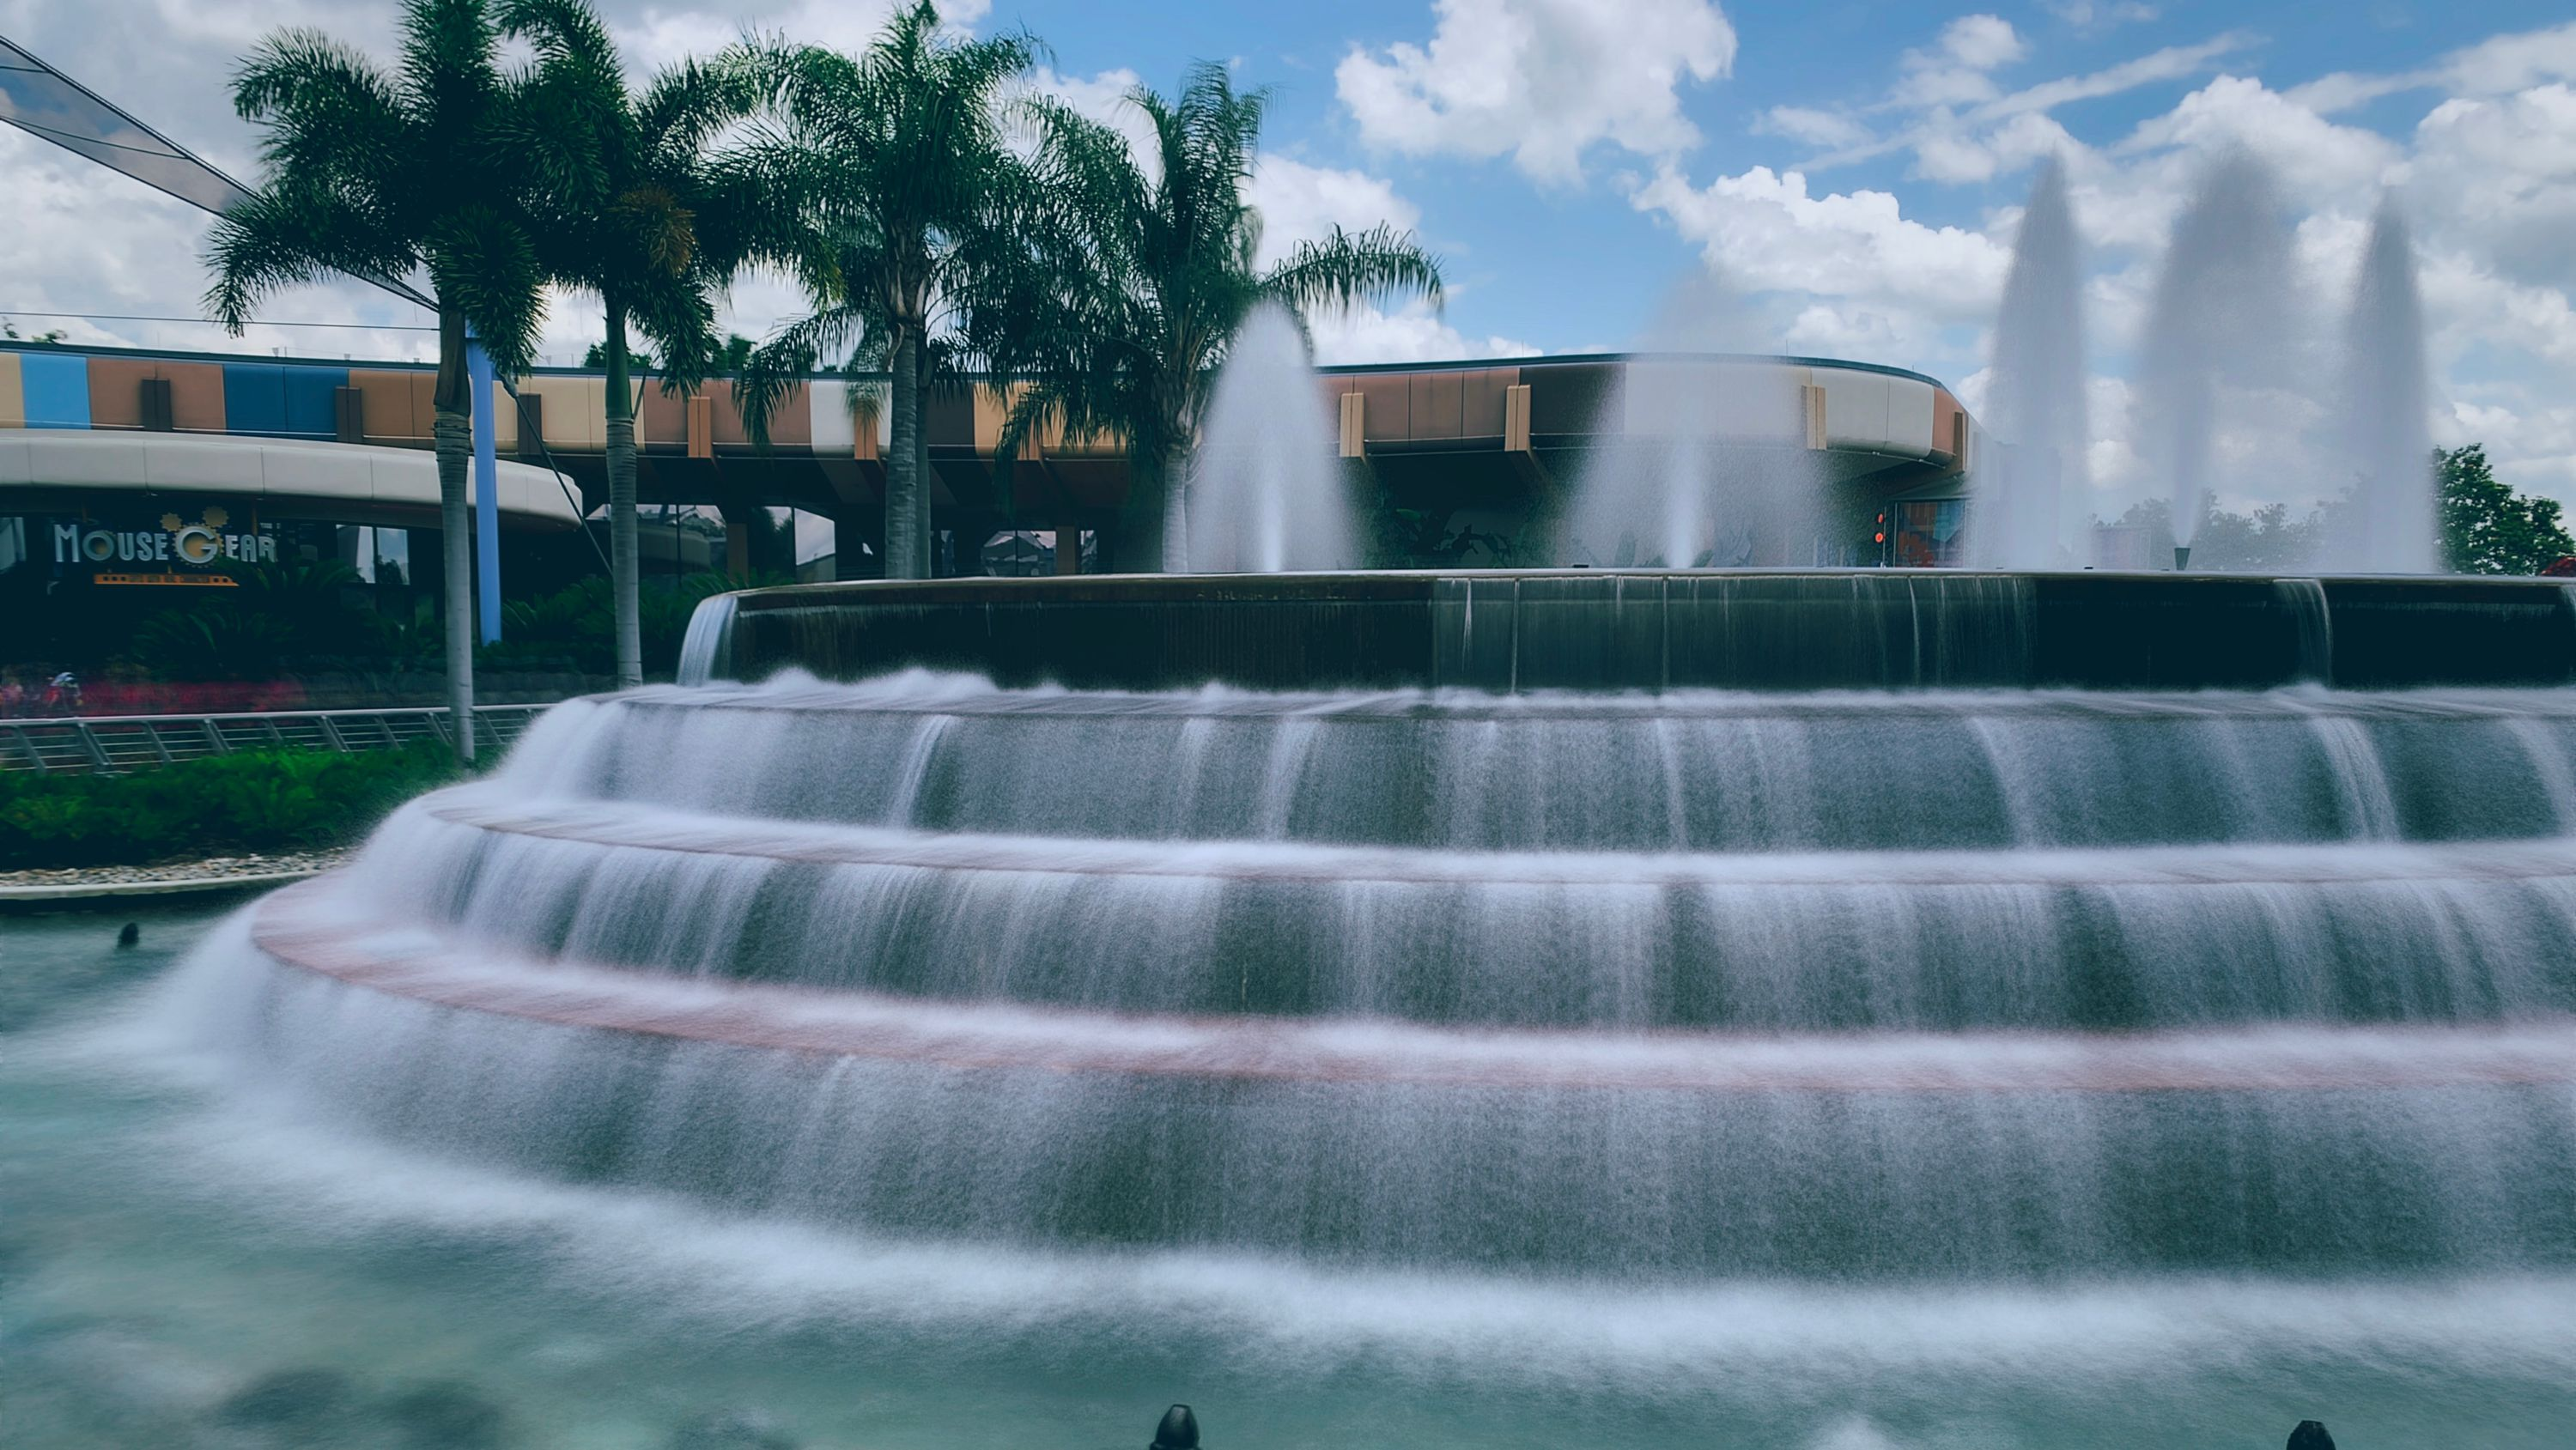 Water feature in Epcot.